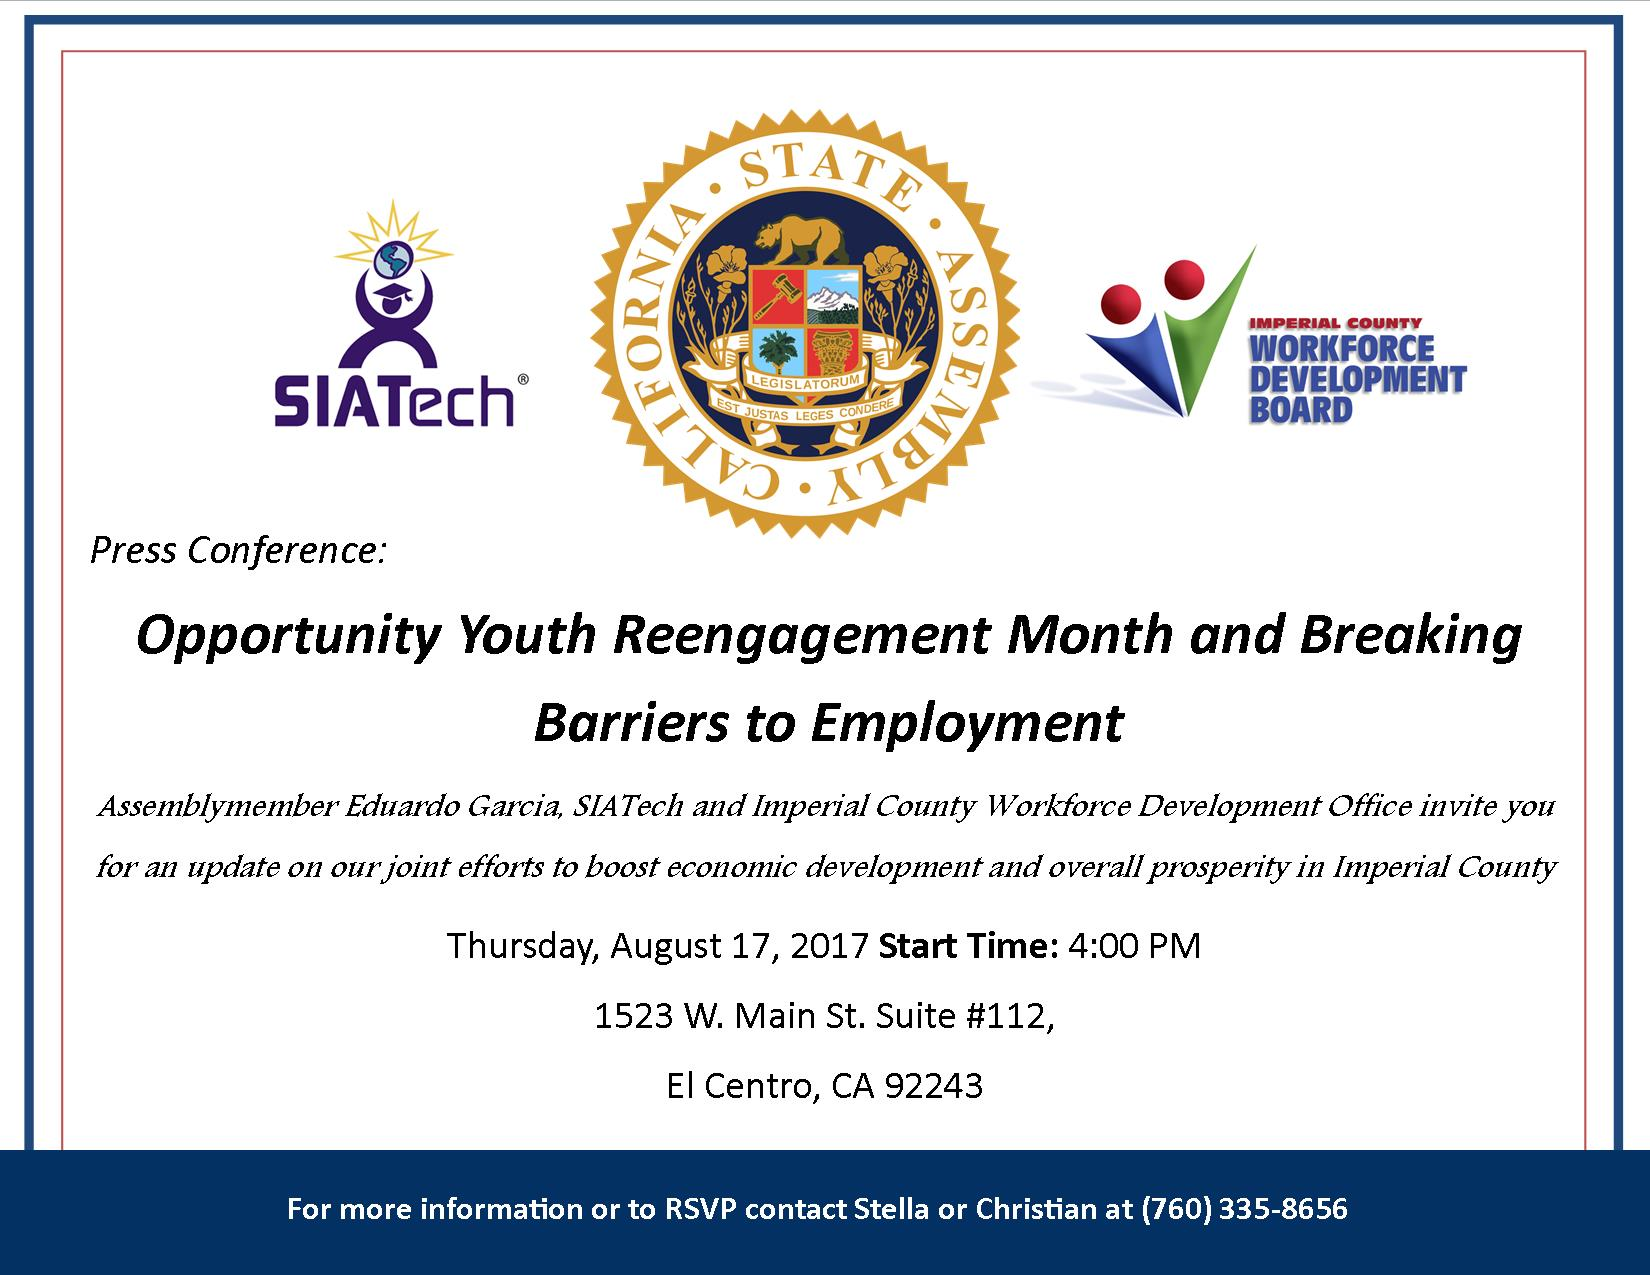 Invitation to Youth Reengagement Month and Breaking Barriels to Employment